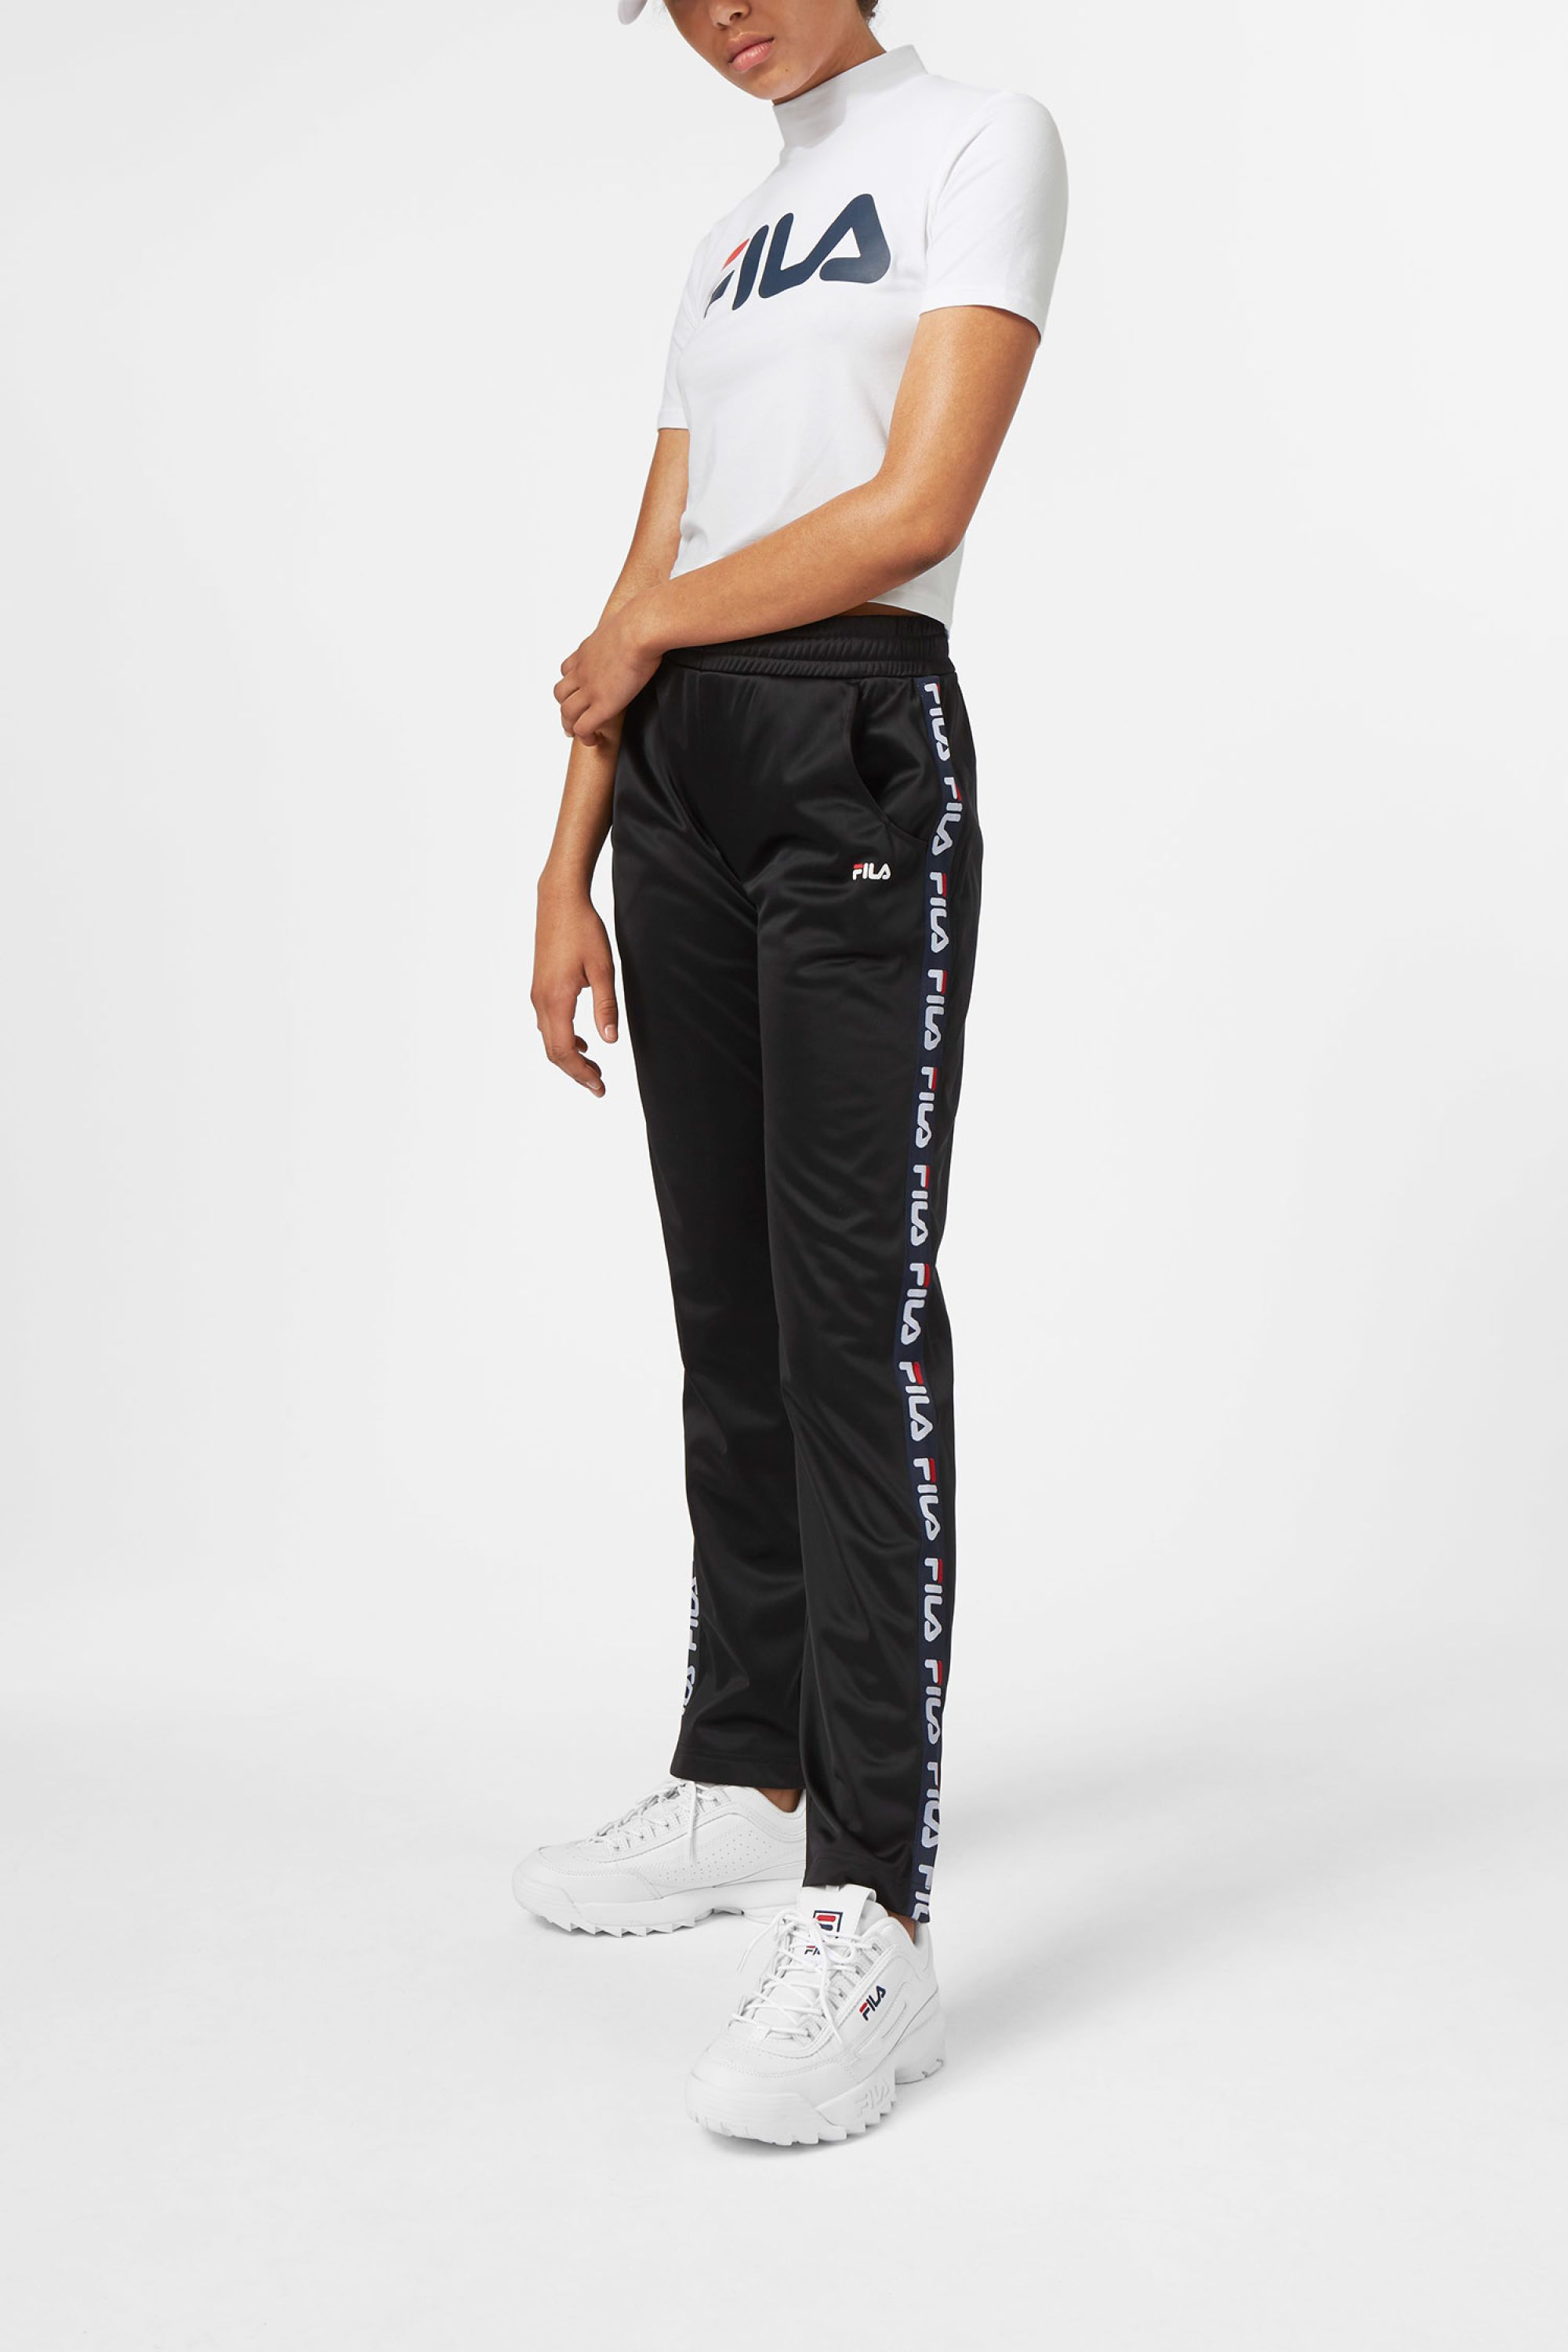 10d789773427a The Strap Track Pants by Fila are a pair of unisex tracksuit pants adorned  with tapes with the brands iconic logo. Made of a soft and sleek material,  they